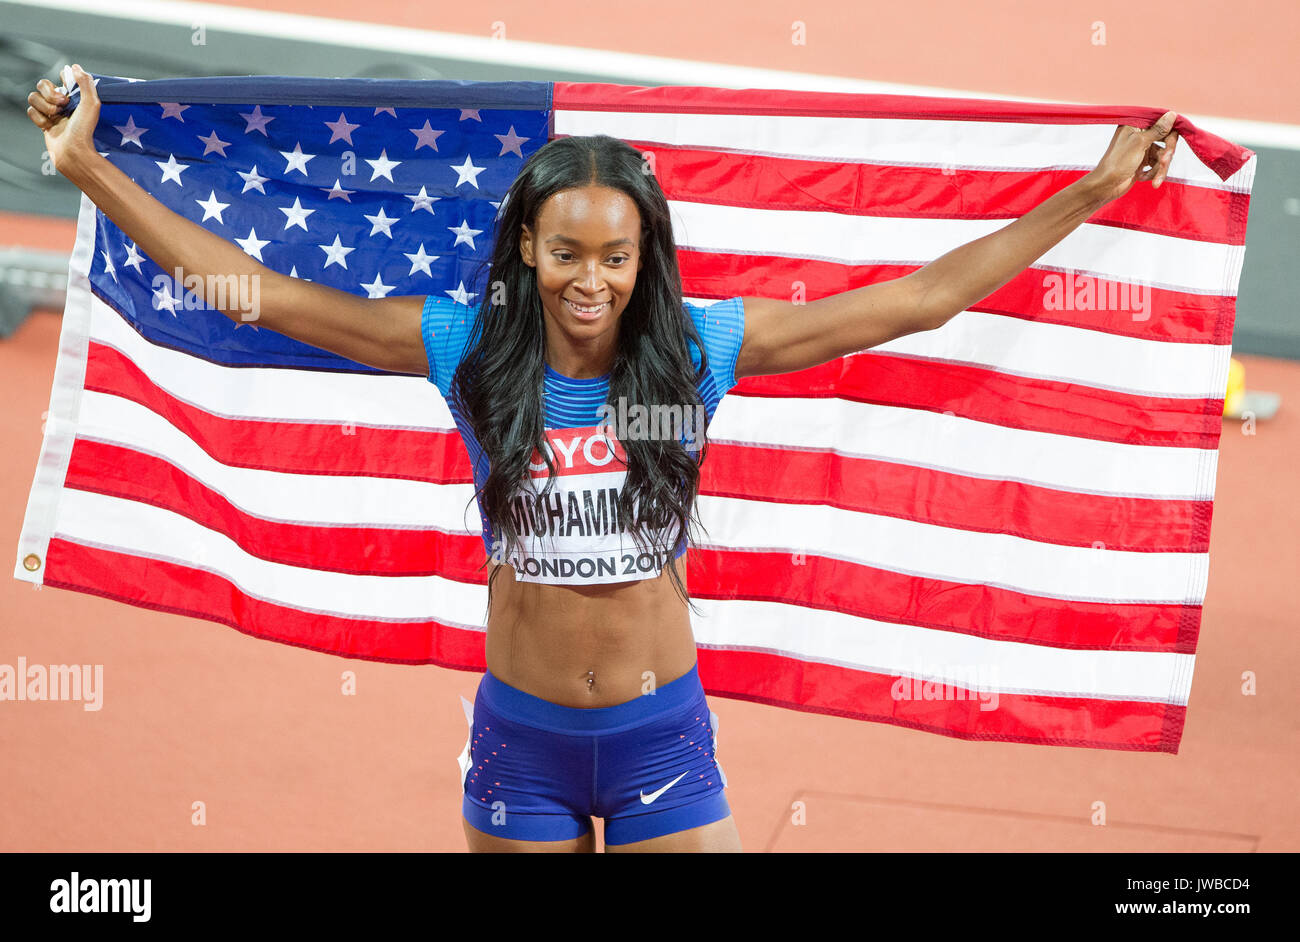 Silver Medalist DALILAH MUHAMMAD of USA poses with the American flag during the IAAF World Athletics Championships 2017 - Day 7 at the Olympic Park, L - Stock Image